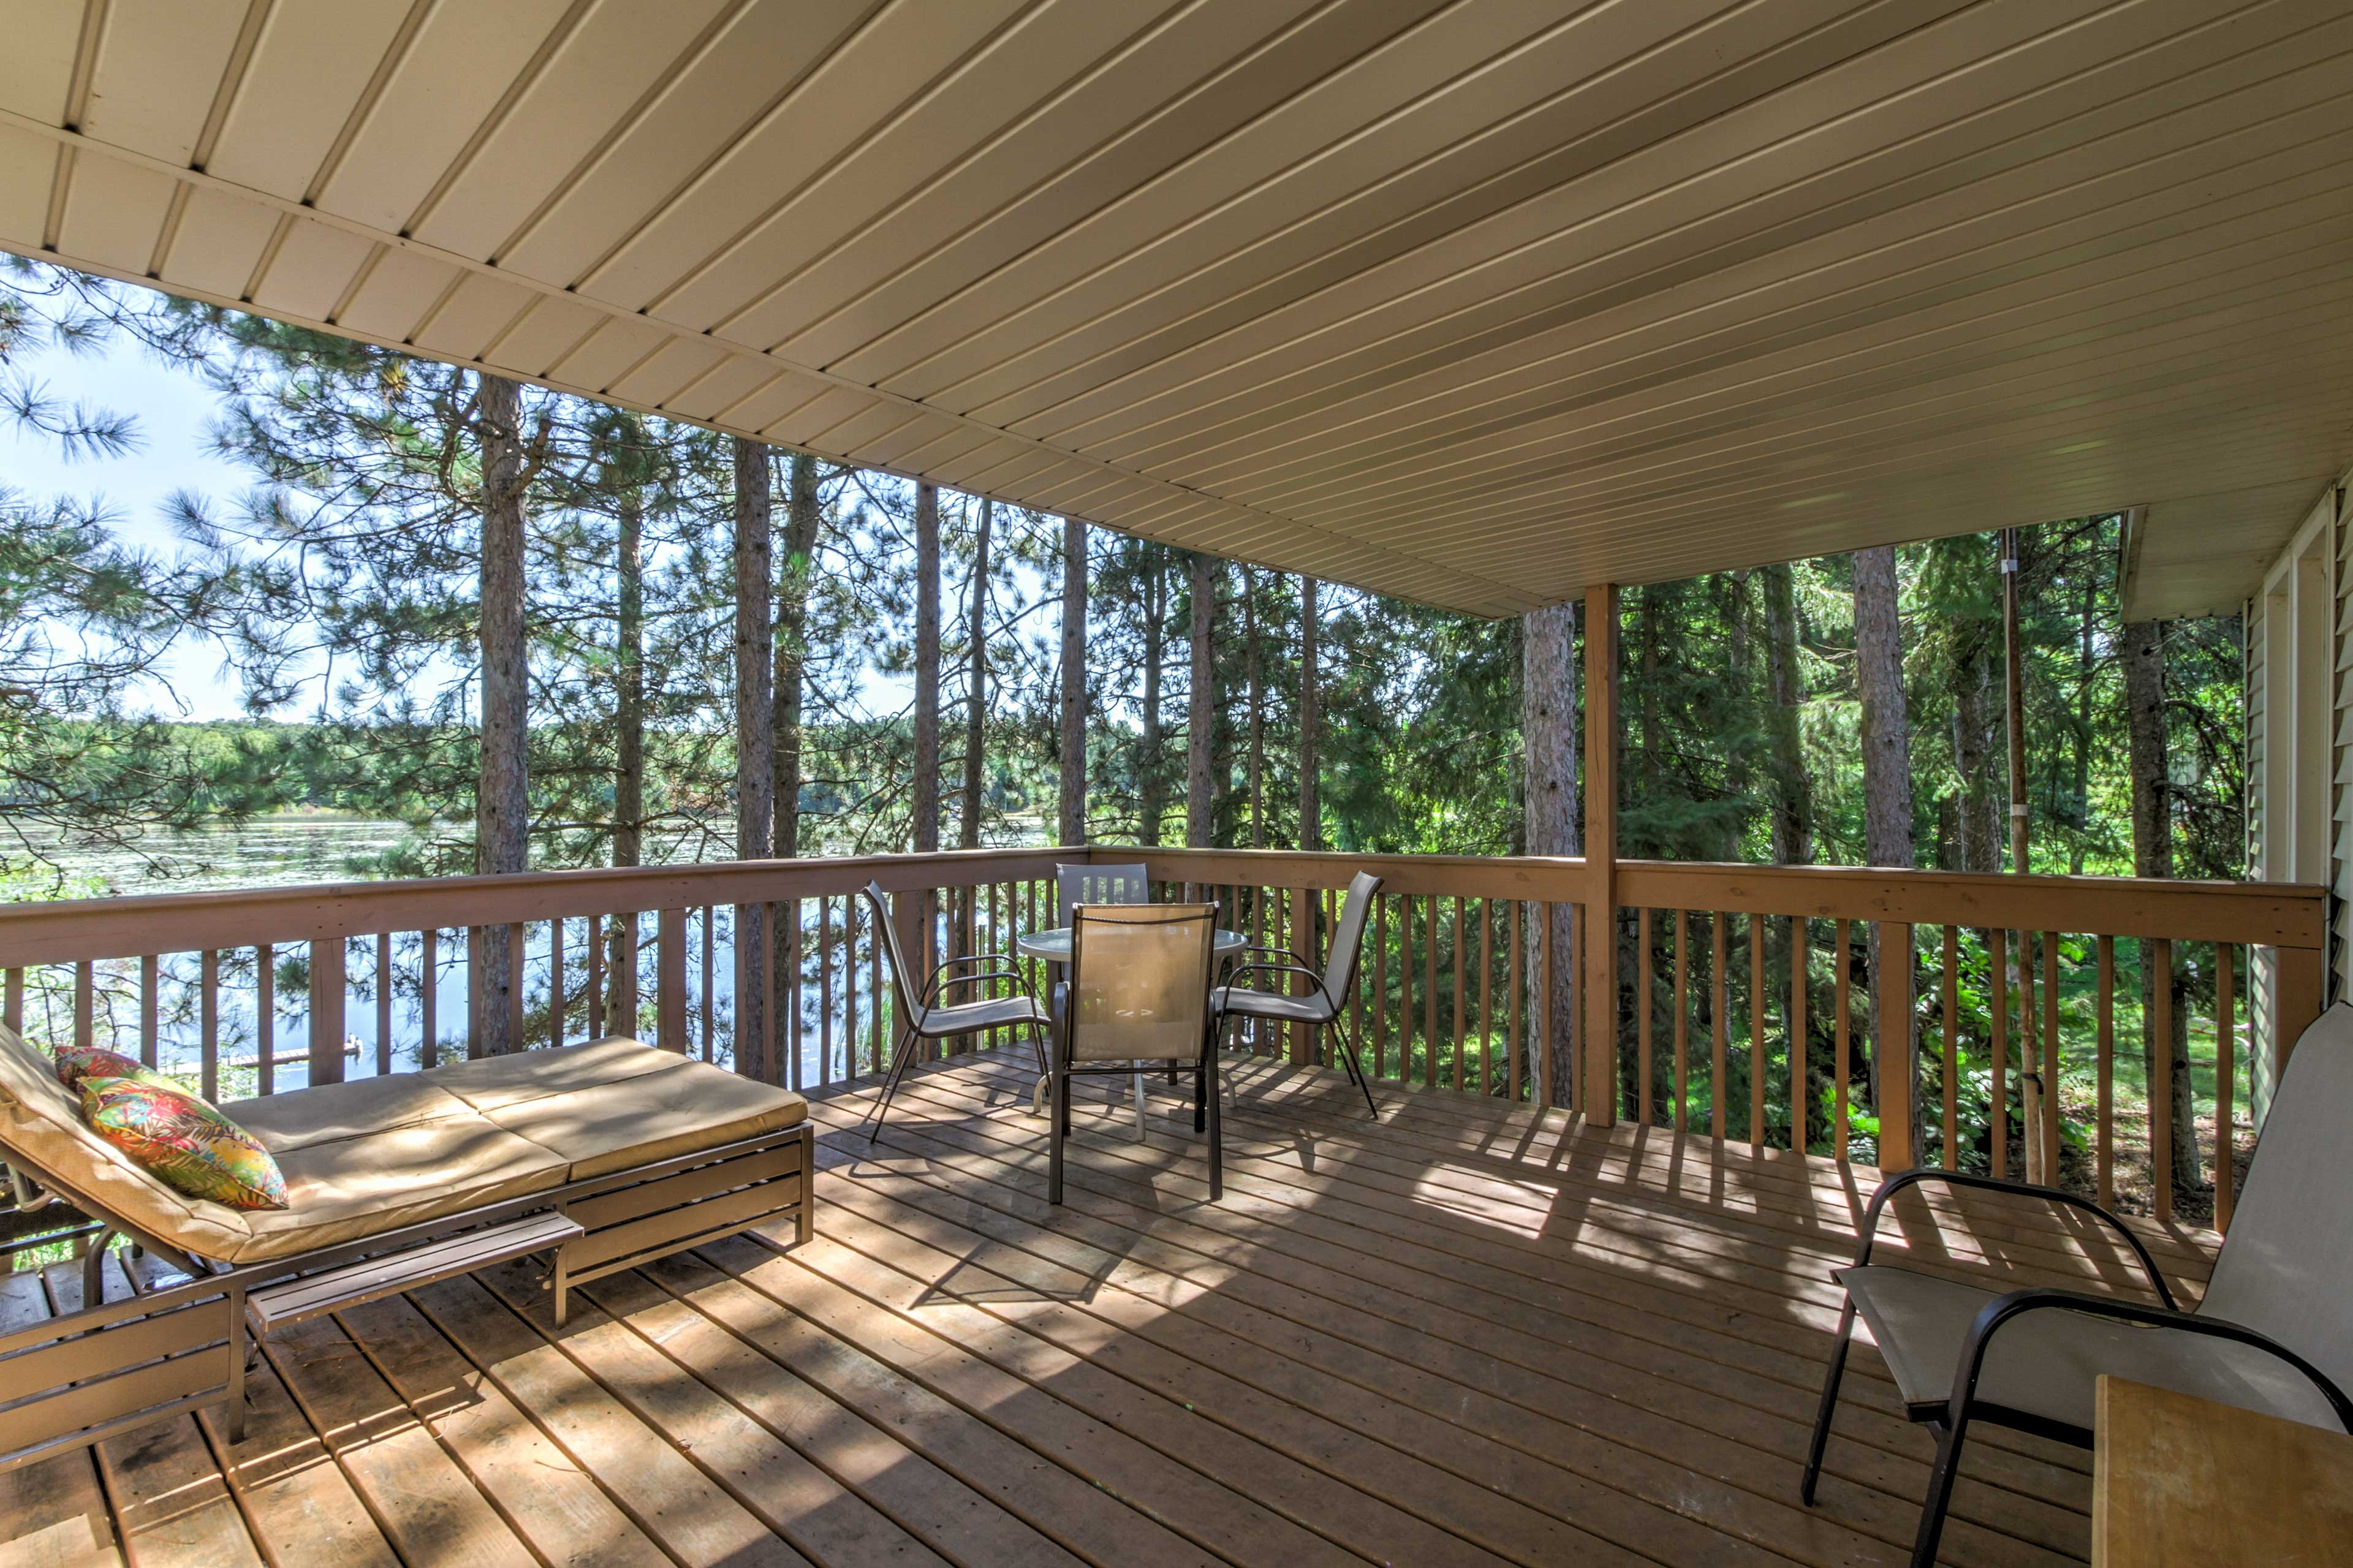 Enjoy a stay at this 2-bedroom, 1-bathroom vacation rental cabin in Westfield!